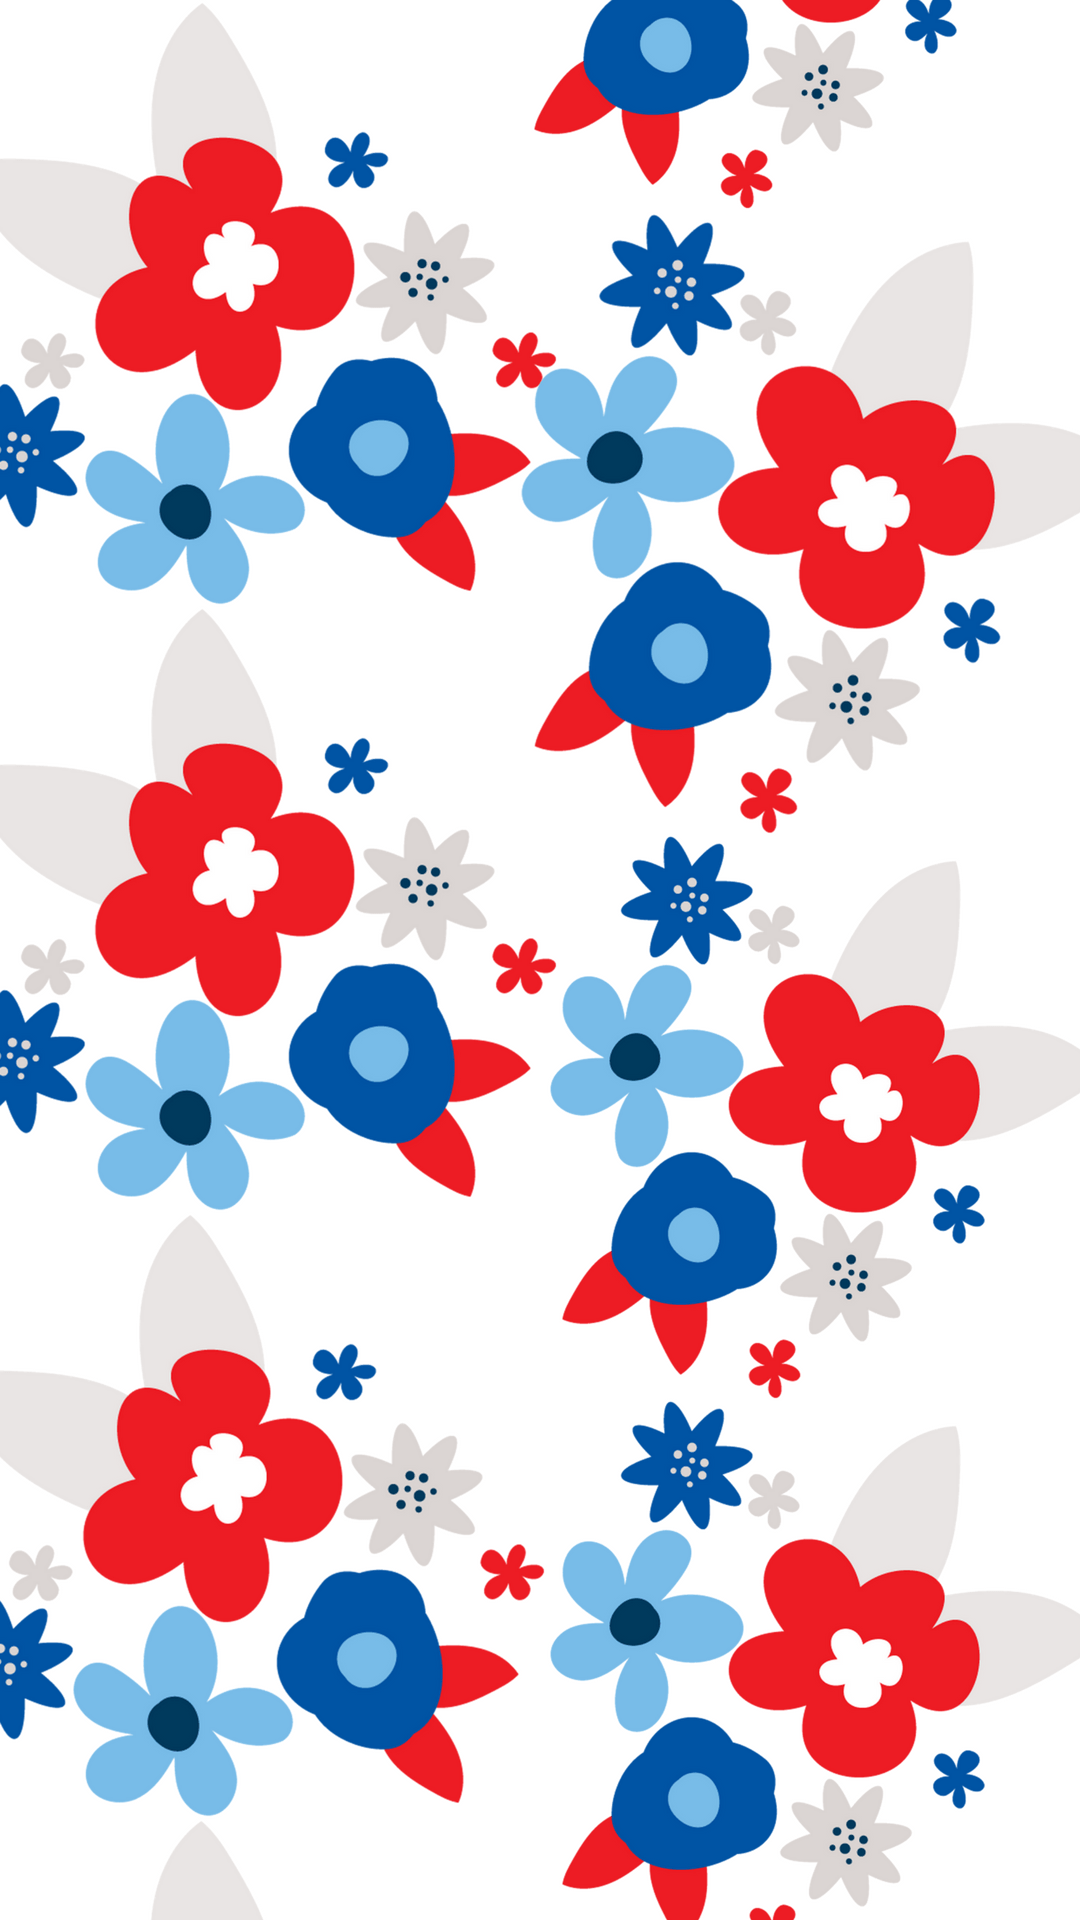 Red White And Blue Floral Smart Phone Wallpaper Blue Wallpaper Iphone Flower Wallpaper Cute Patterns Wallpaper